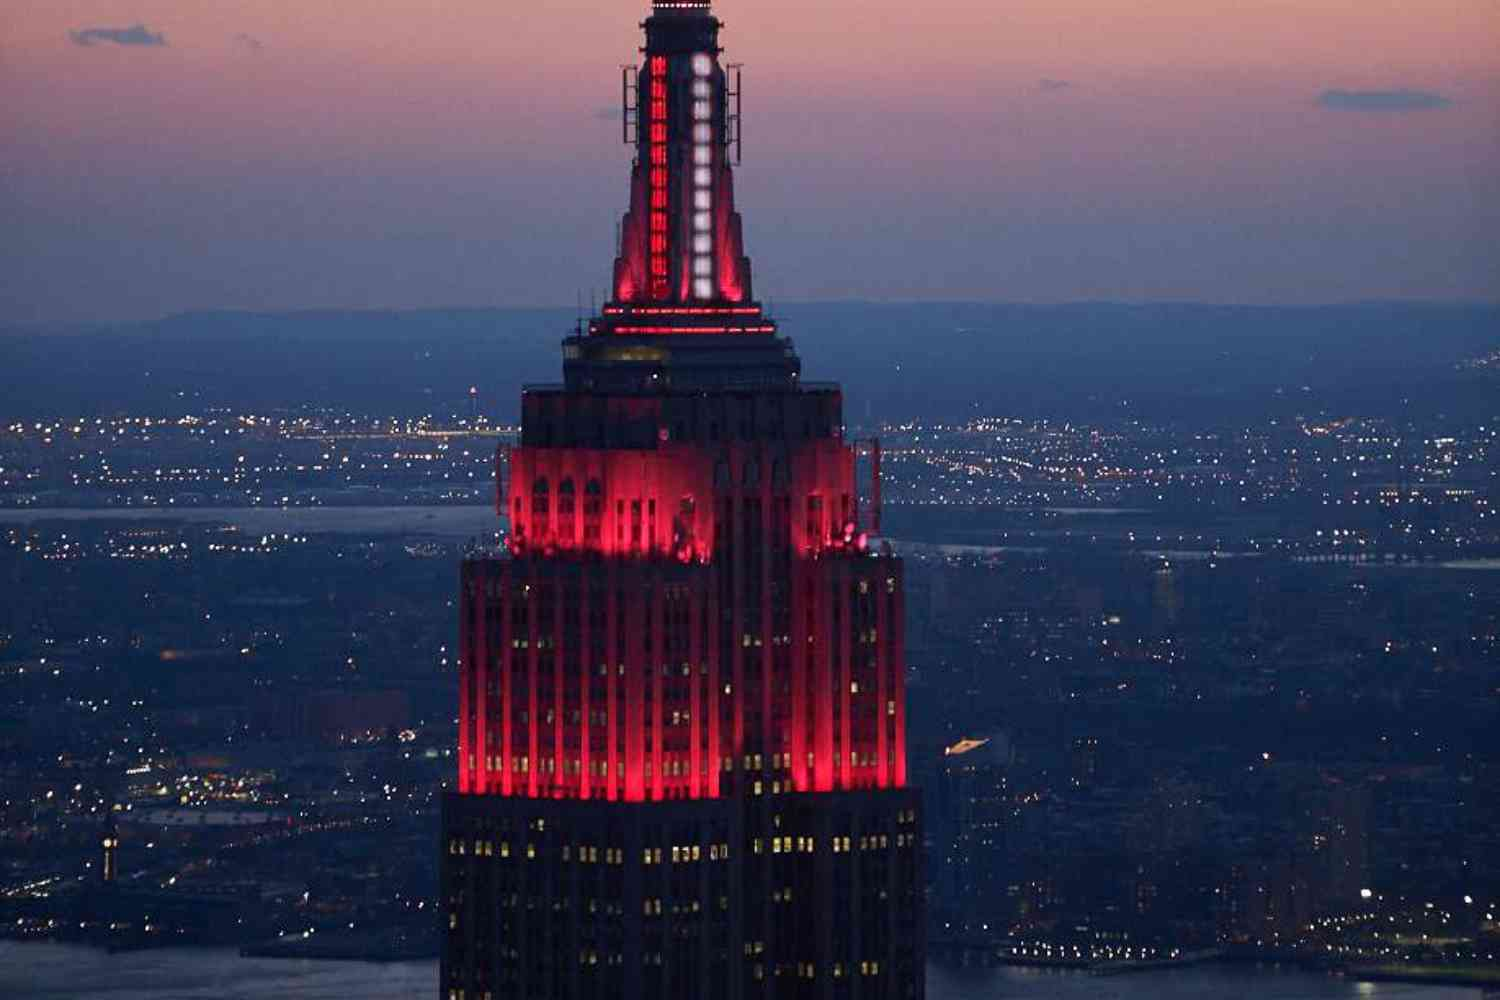 Empire State Building lit up with red, flashing light to honor healthcare workers